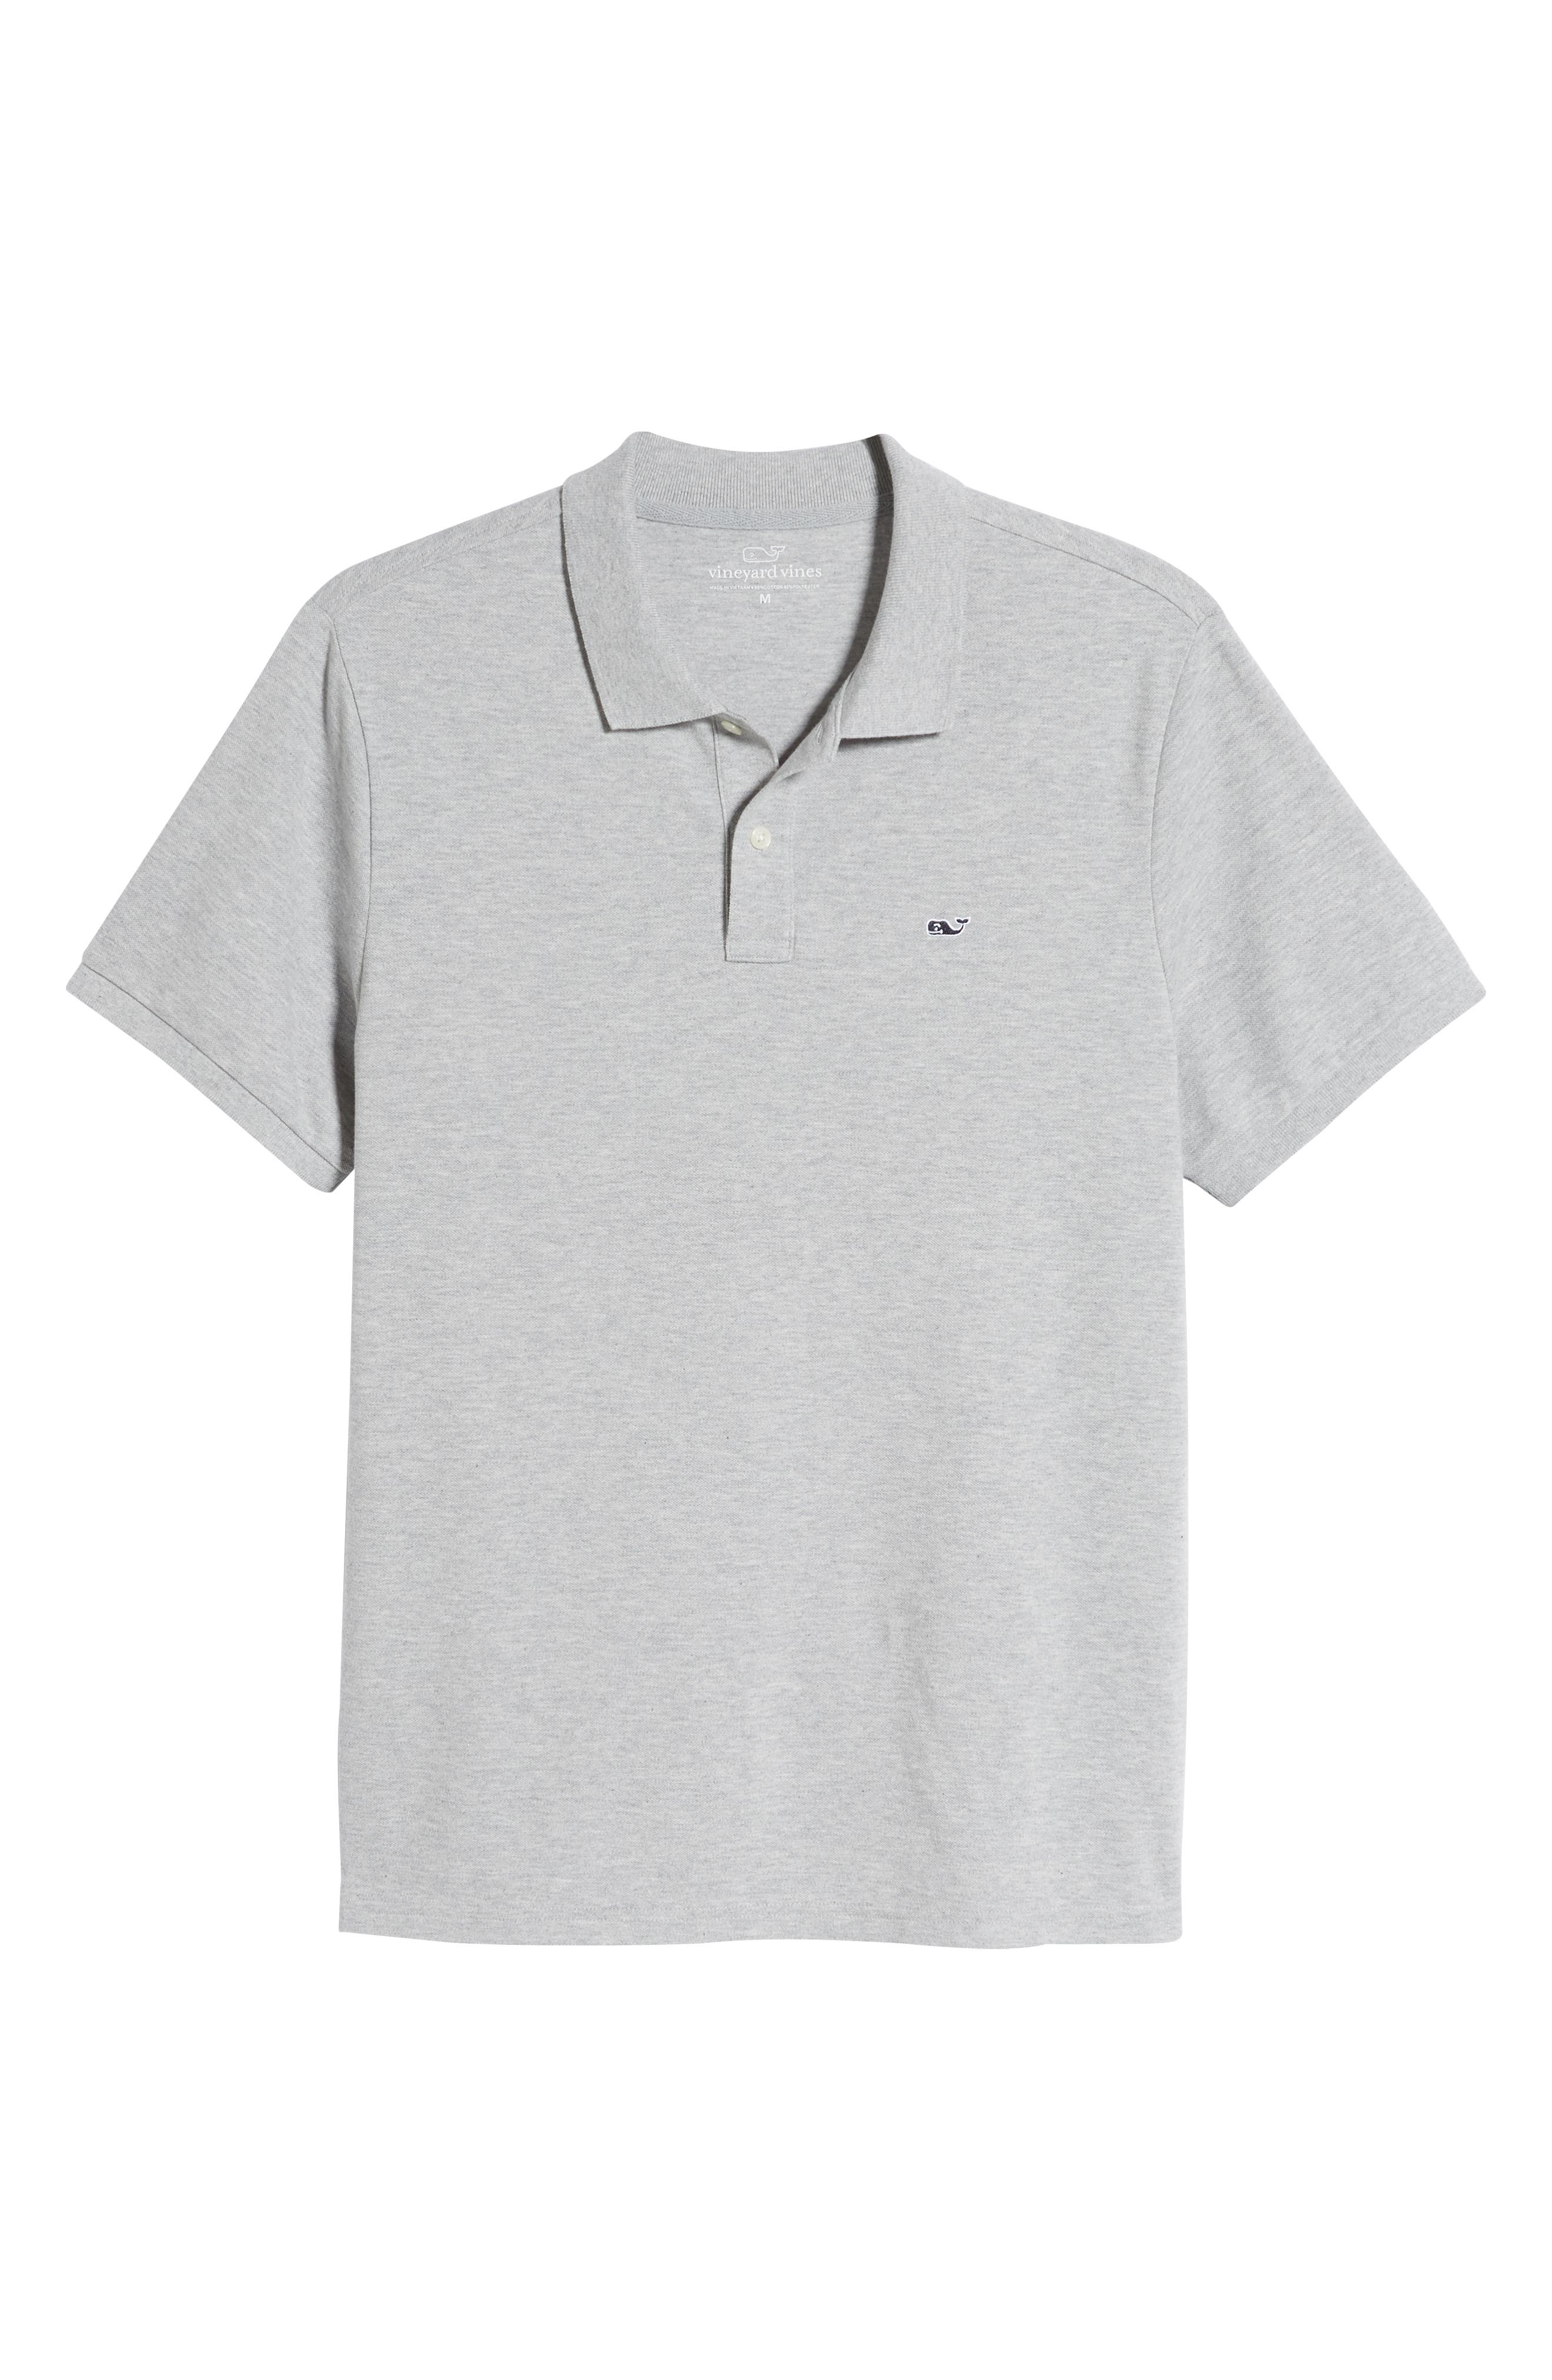 VINEYARD VINES, Regular Fit Stretch Piqué Polo, Alternate thumbnail 6, color, LIGHT GRAY HEATHER